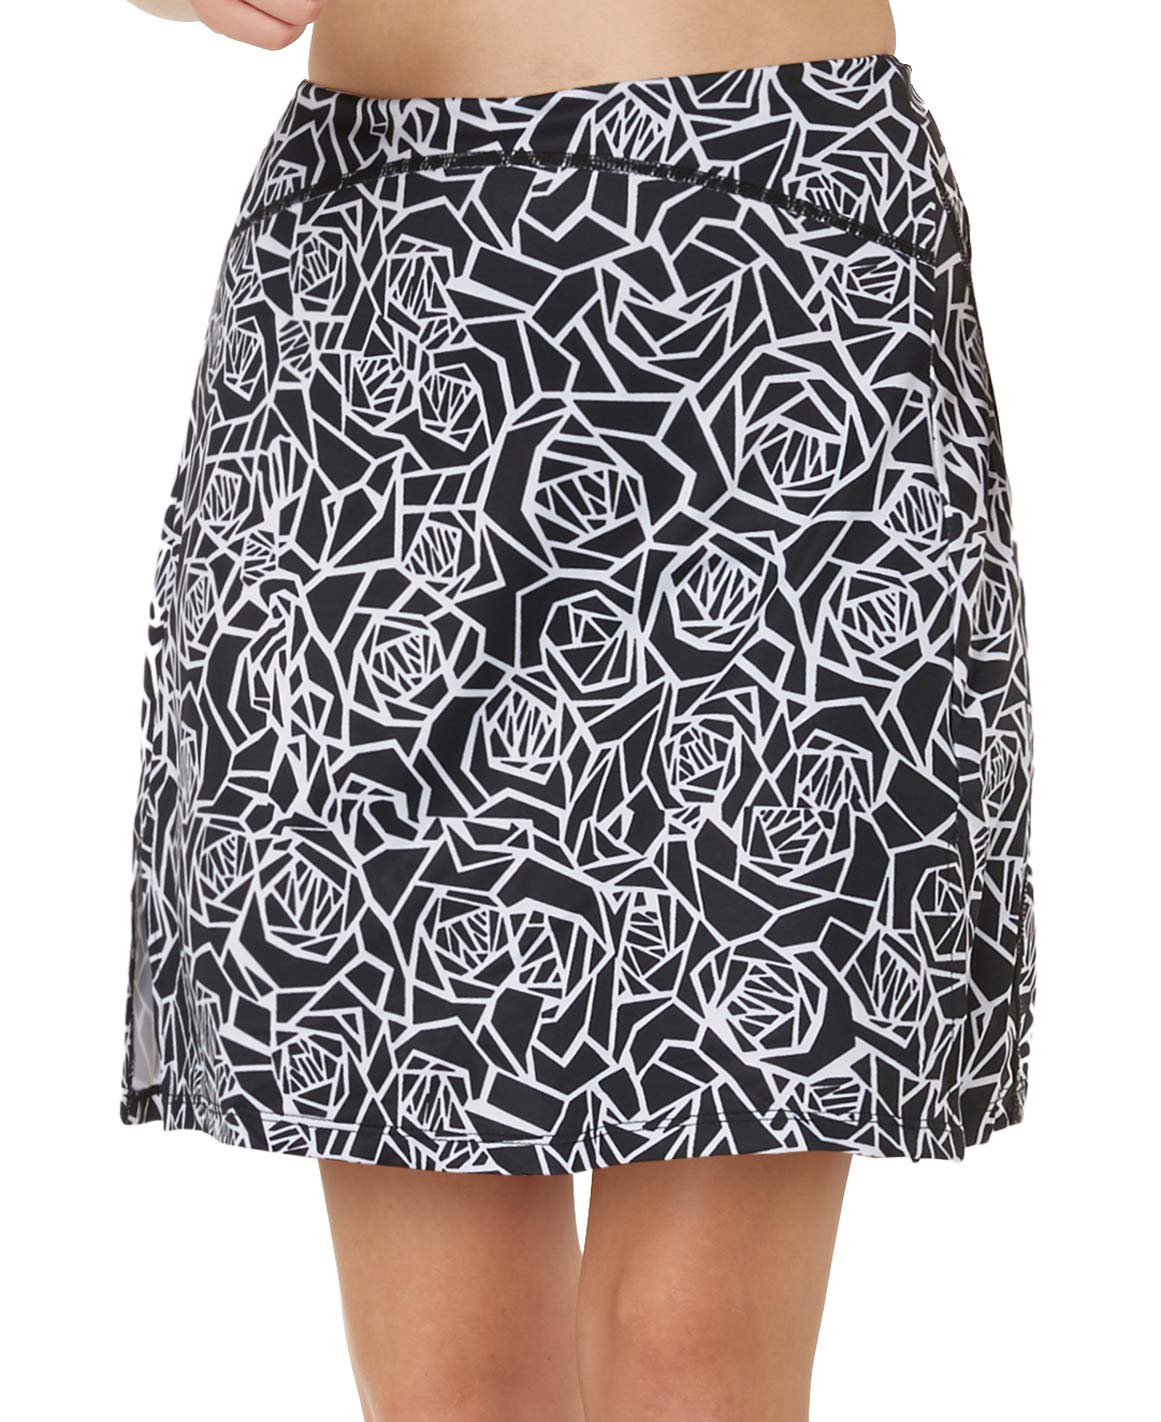 slimour Women Print Golf Skirt Travel Skirts with Pocket Swim Skirt High Waist with Shorts Black Rose XL by slimour